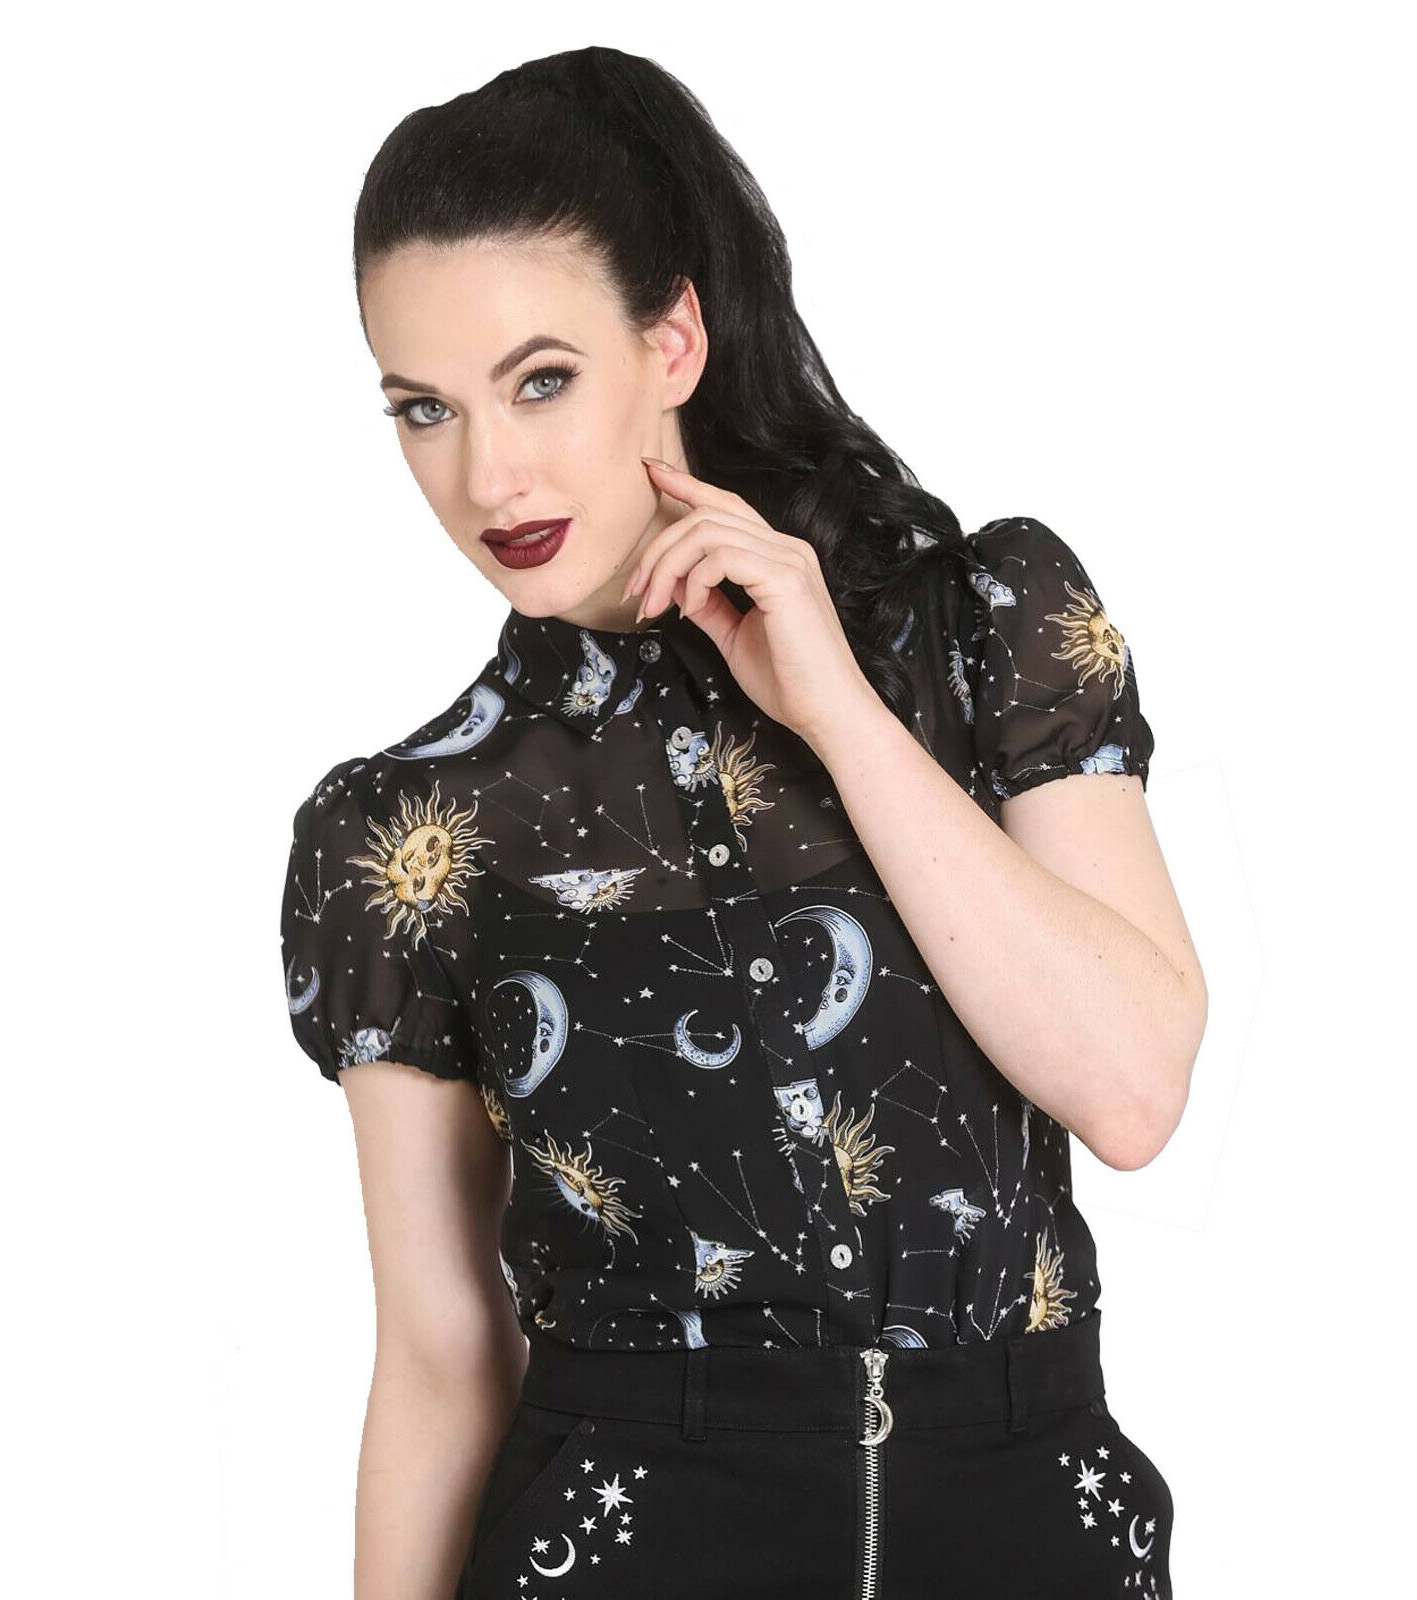 Hell-Bunny-50s-Shirt-Top-Gothic-Black-Sun-Moon-Stars-SOLARIS-Blouse-All-Sizes thumbnail 3